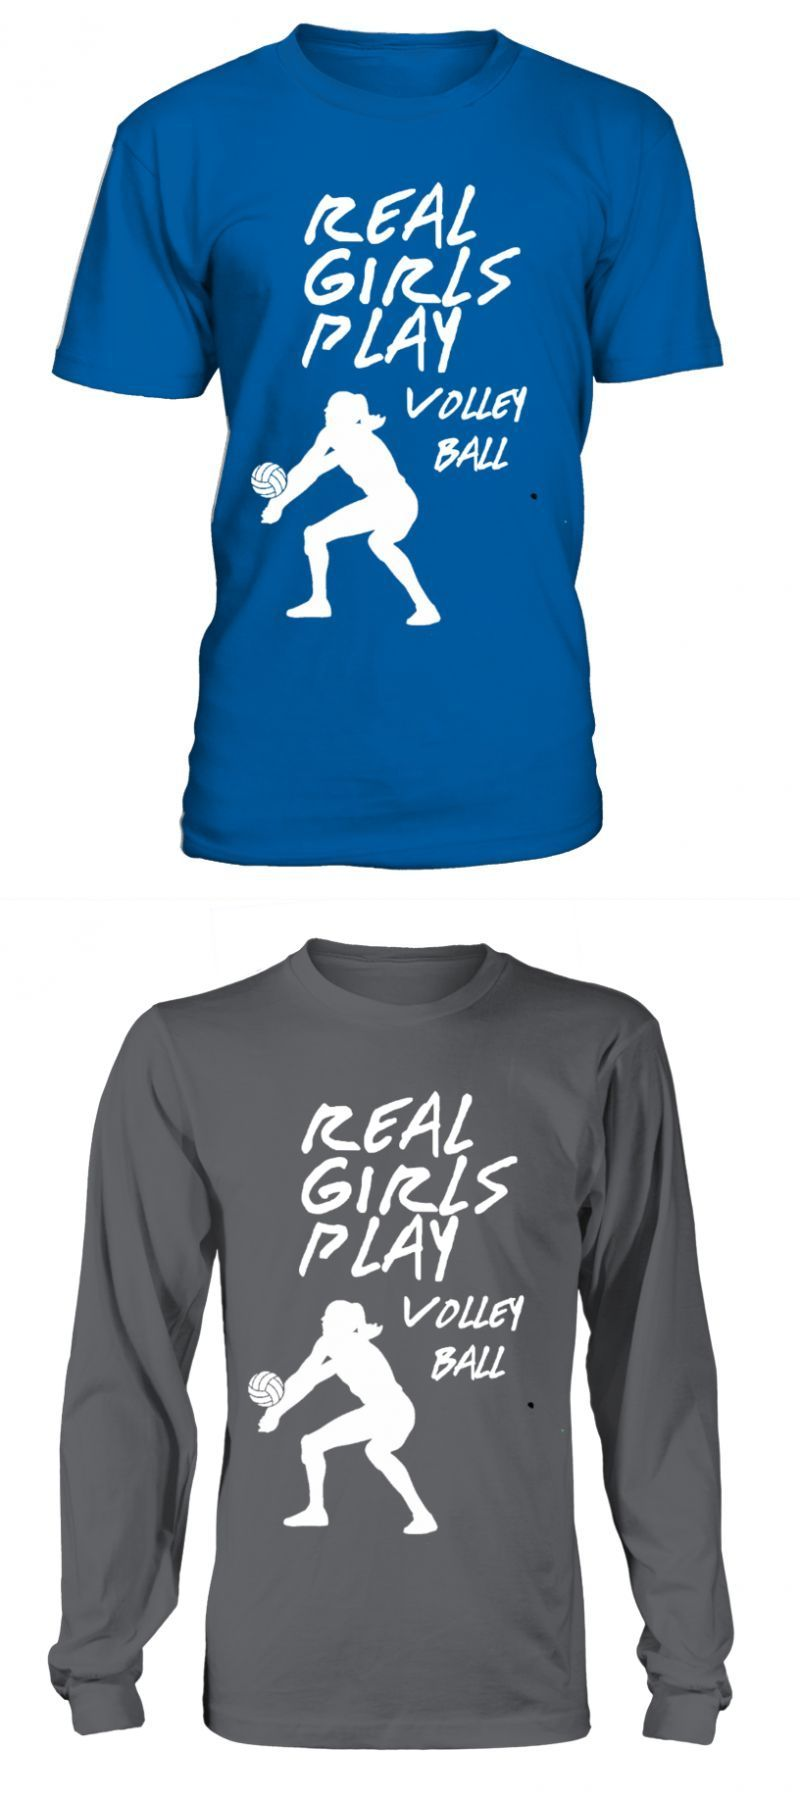 T Shirt Real Girls Play Volley Ball Limited Edition Volleyball T Shirt Sayings T Shirt Real Girls Pla T Shirts With Sayings Shirts With Sayings Volley